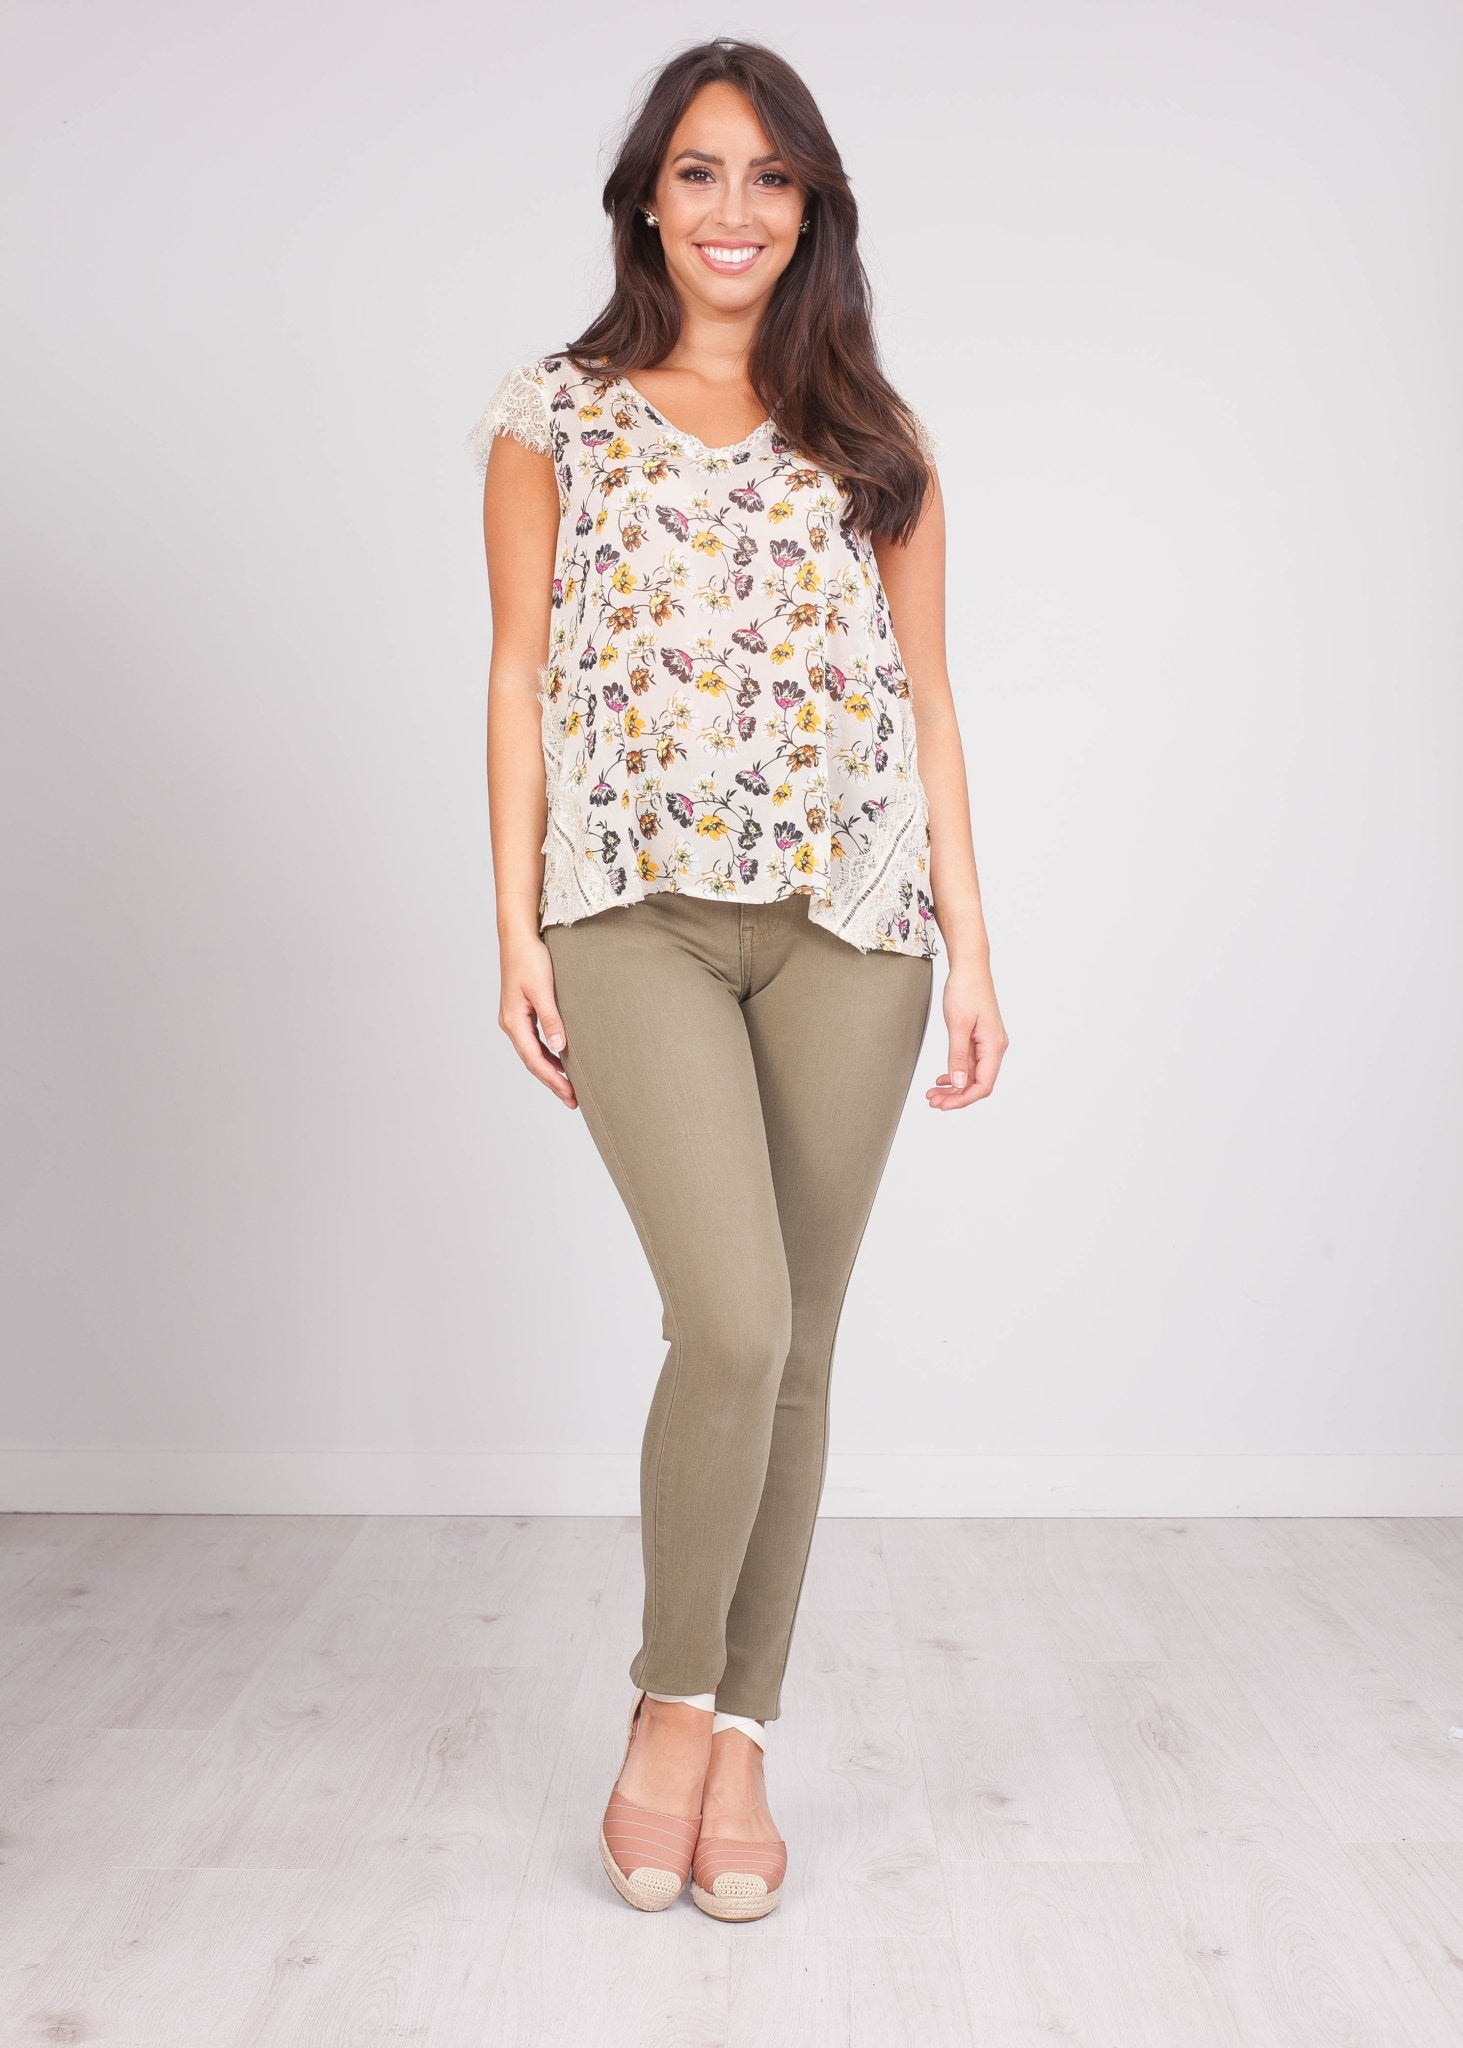 Cherie Cream Printed Blouse - The Walk in Wardrobe